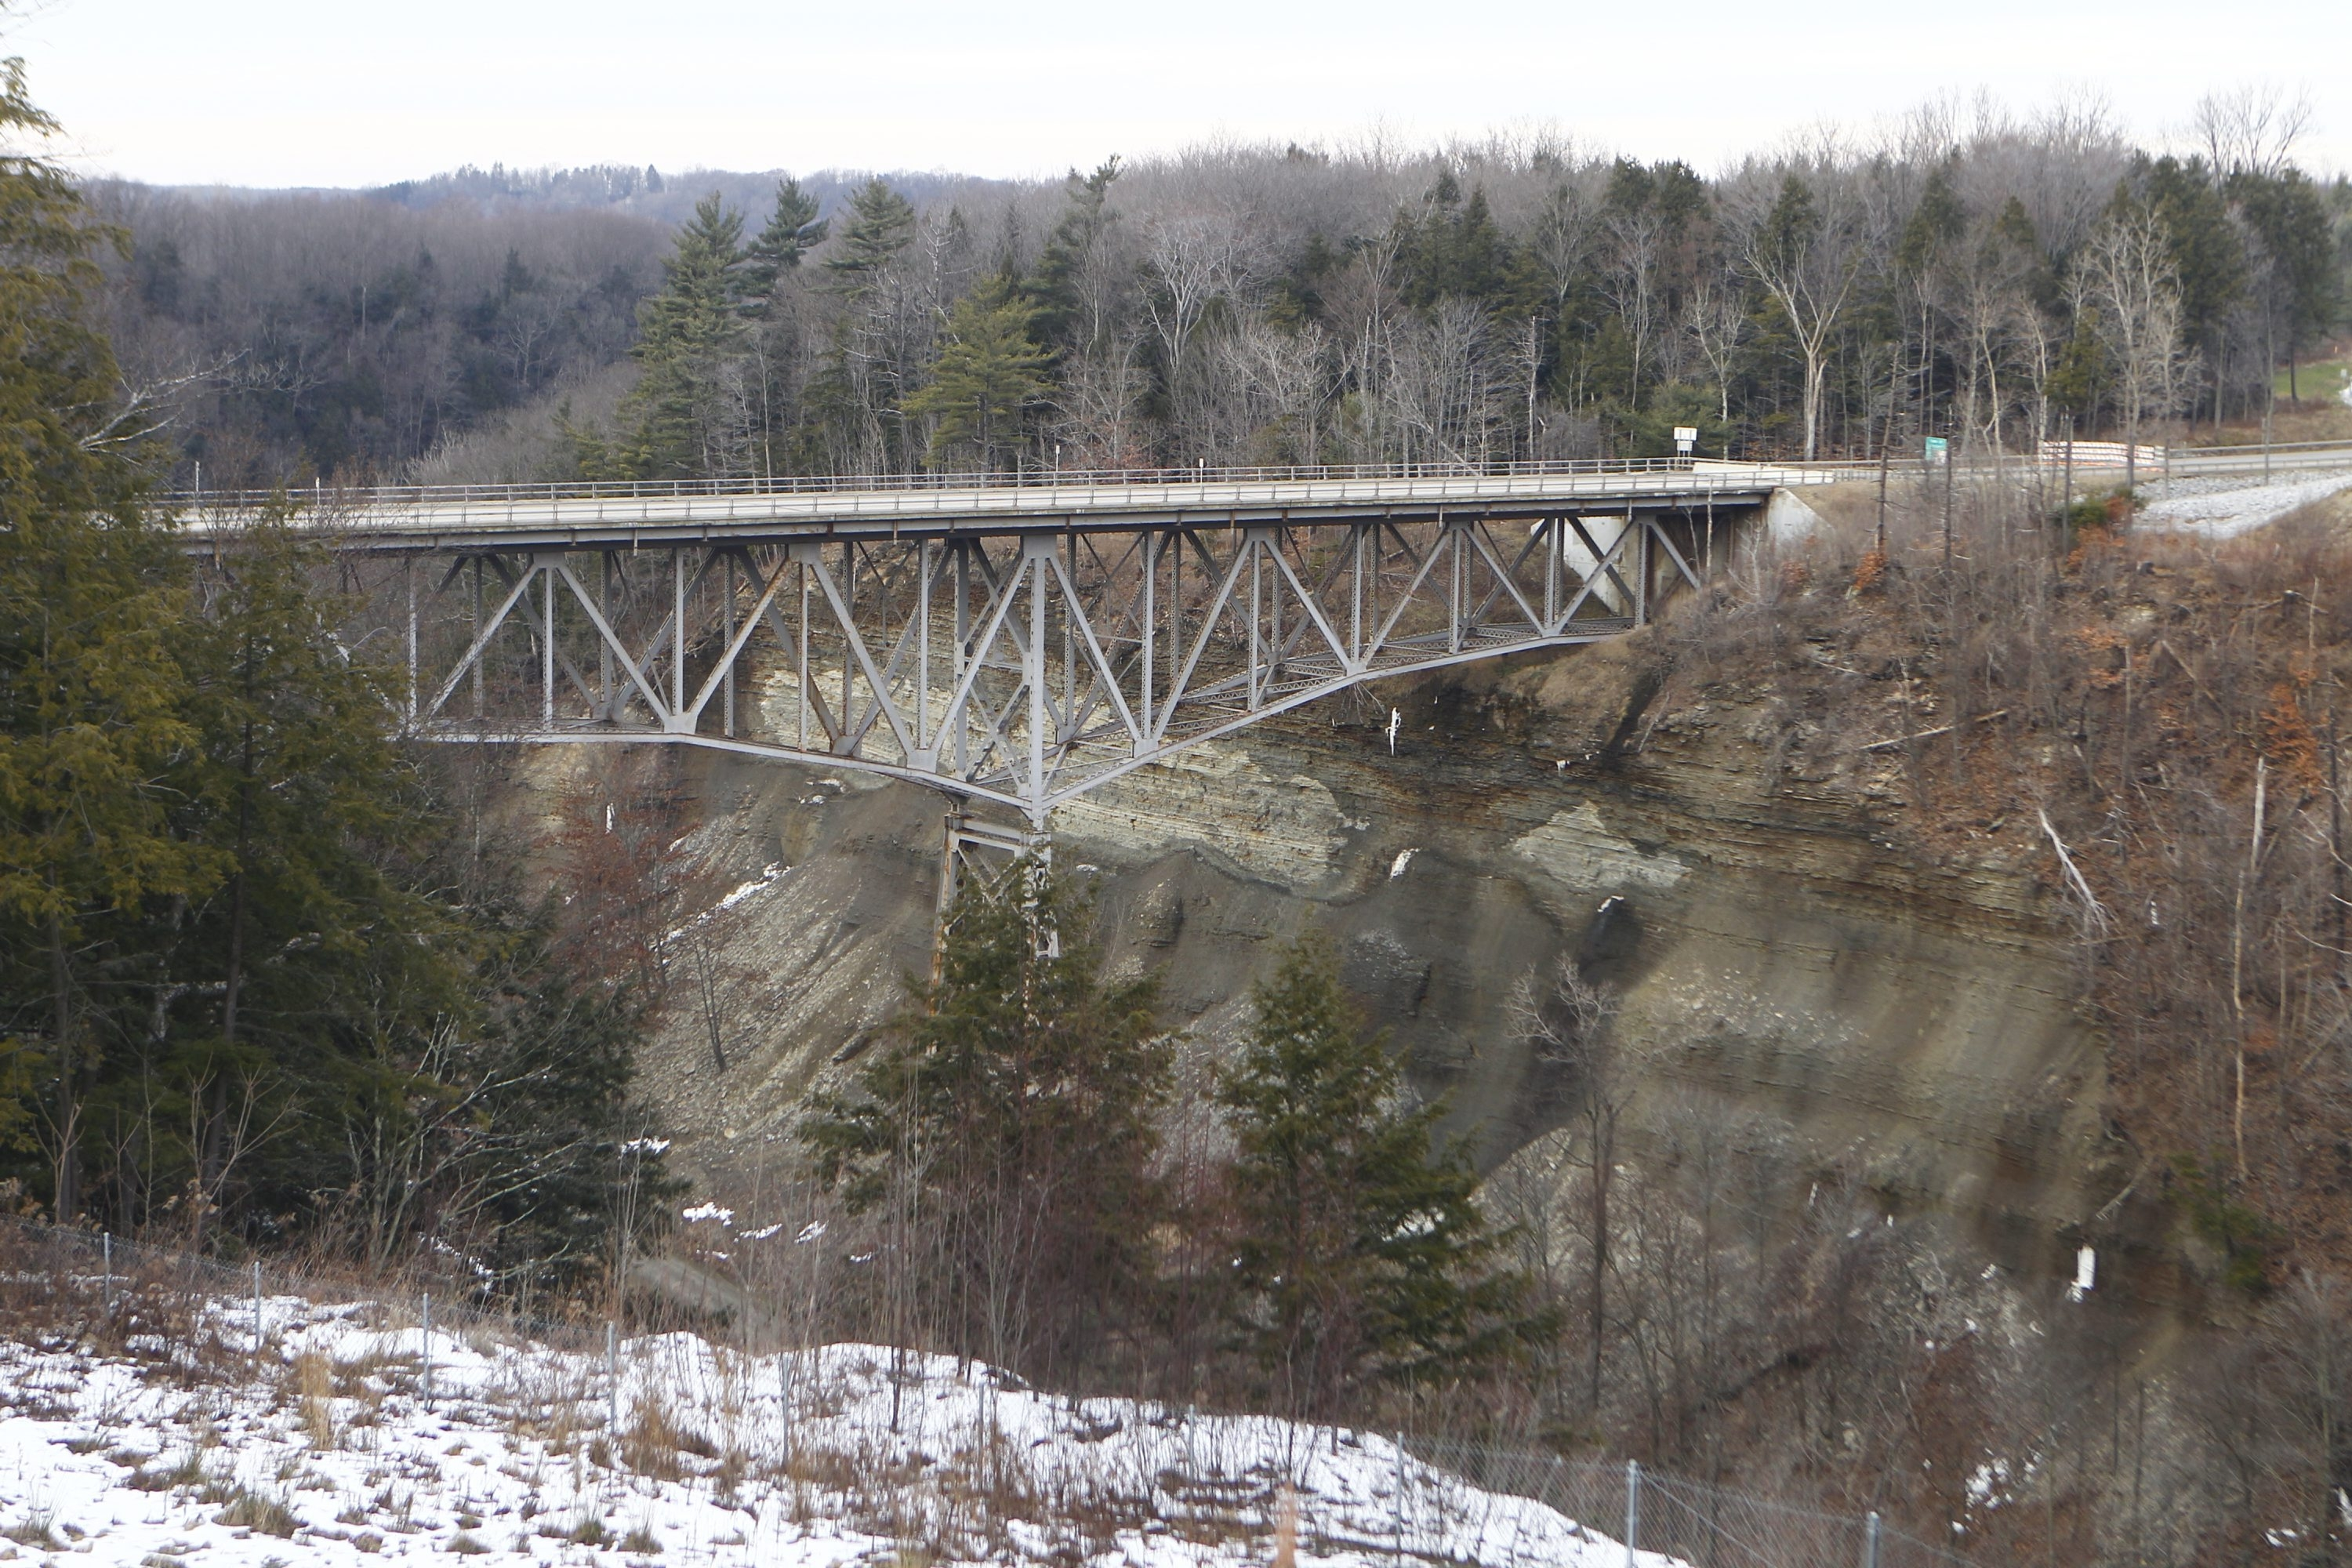 The  Old Route 219 bridge is closed in Springville. The nearby new Route 219 Expressway bride is now the state road serving the area.